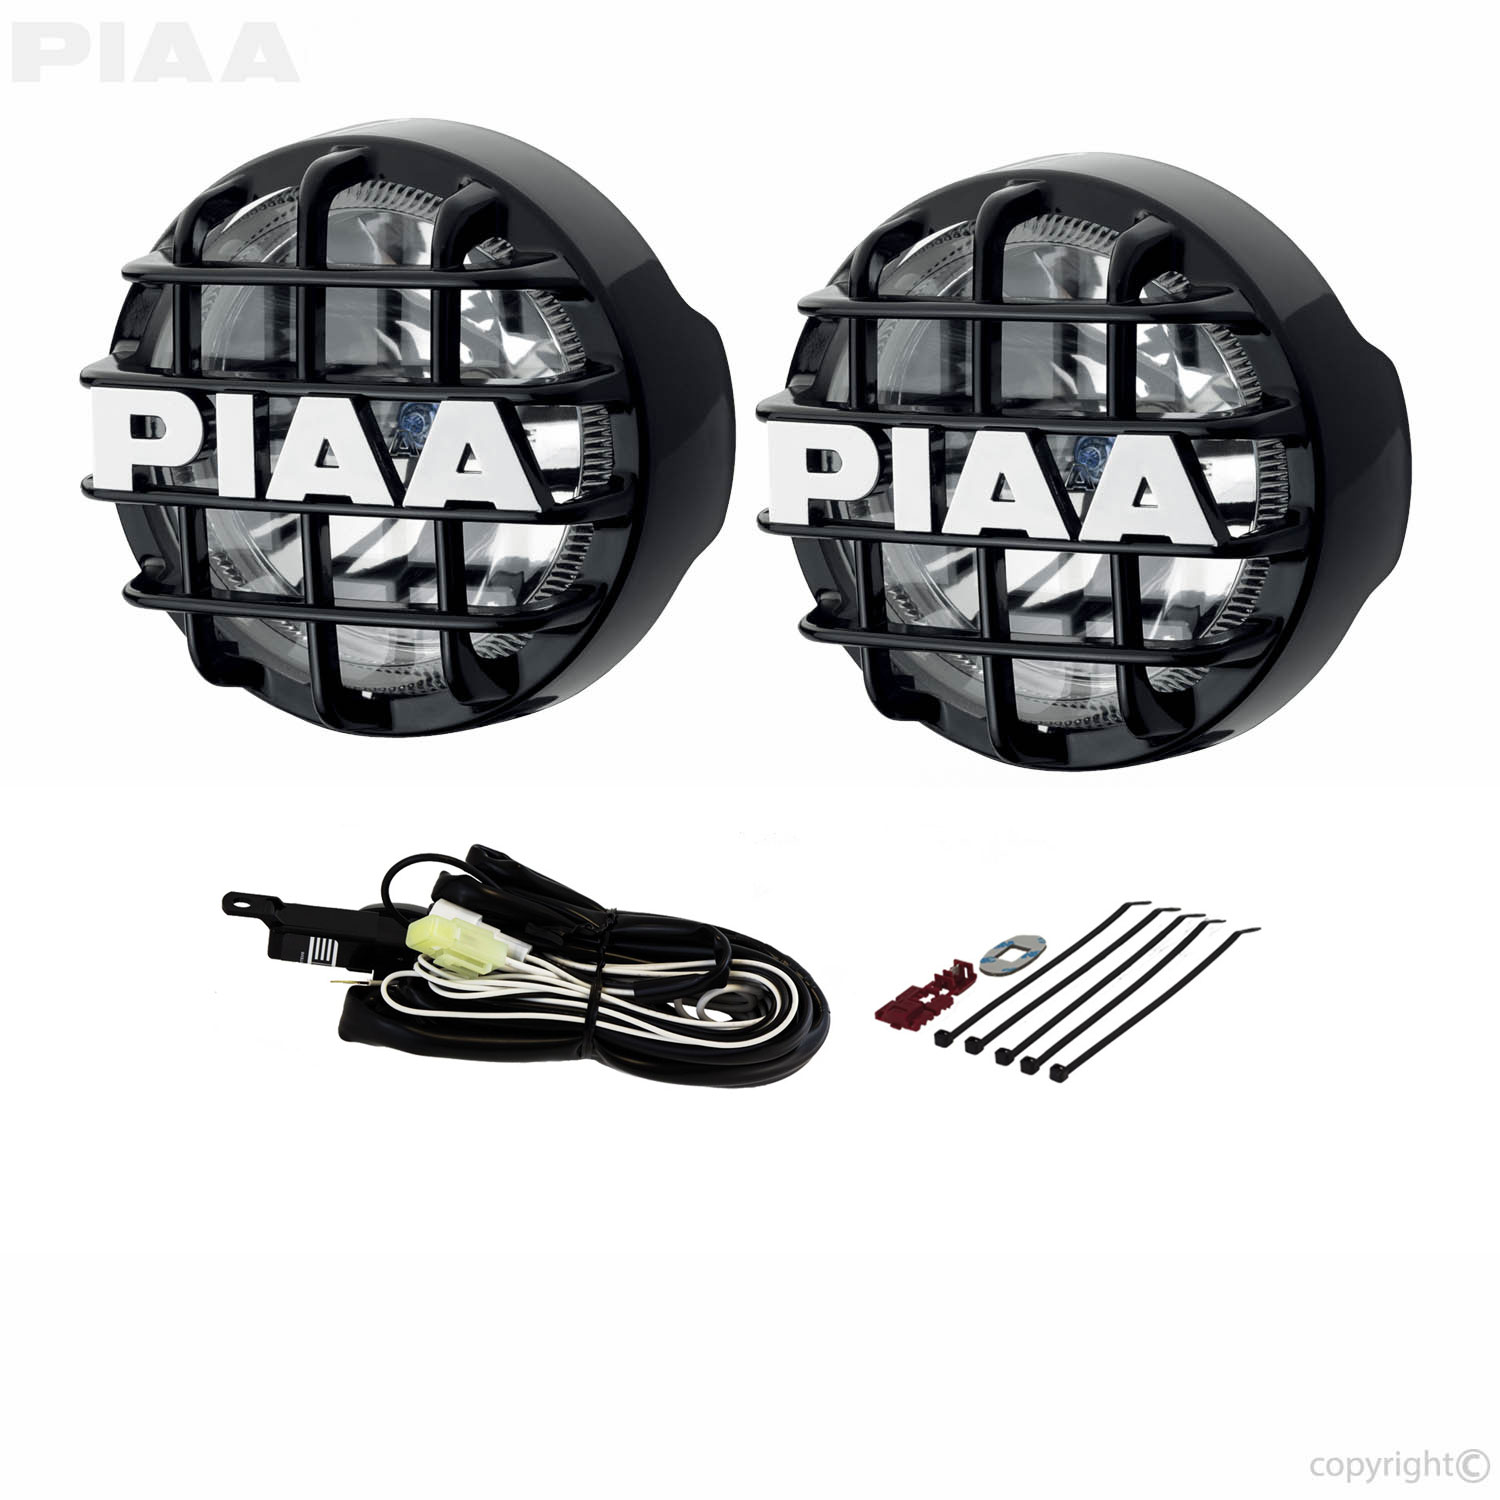 small resolution of piaa wiring diagram wiring diagrampiaa lights wiring diagram wiring schematic diagrampiaa 510 wiring harness piaa series